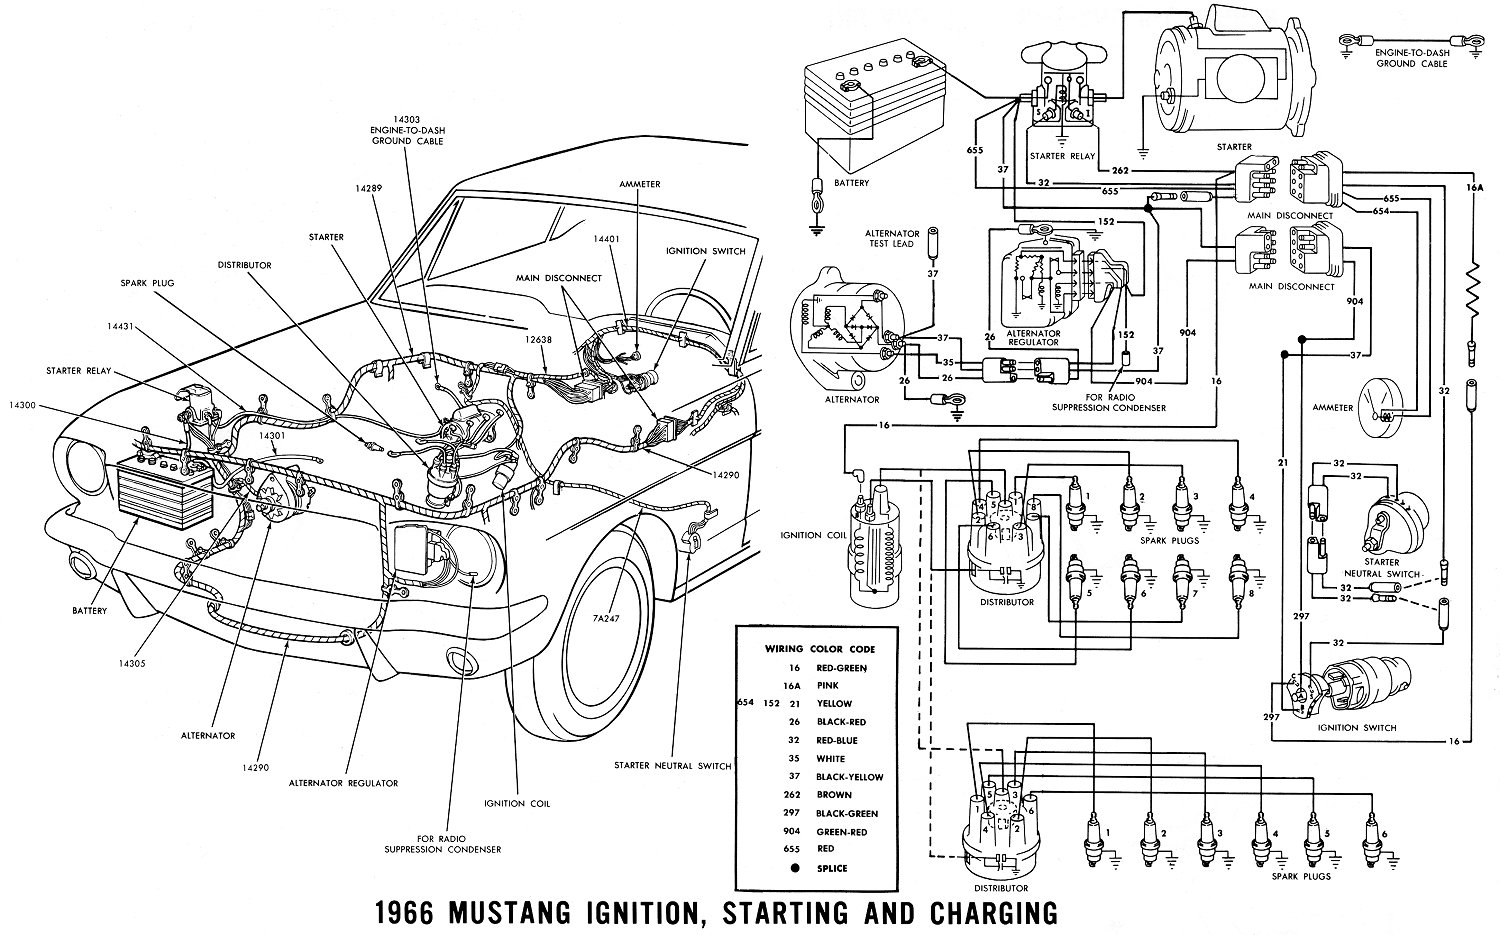 65 lincoln ignition wiring diagram with Mustang Wiring Diagrams on 687009 Electrical Gremlins Front Running Lights Turn Signals Ammeter Question additionally 733146 64 5 Under Dash Harness Questions moreover 85 Ford 150 351 Alternator Wiring Diagram furthermore 1965 Mustang Wiring Diagrams in addition 63 T Bird Restoration Wiring Diagrams.